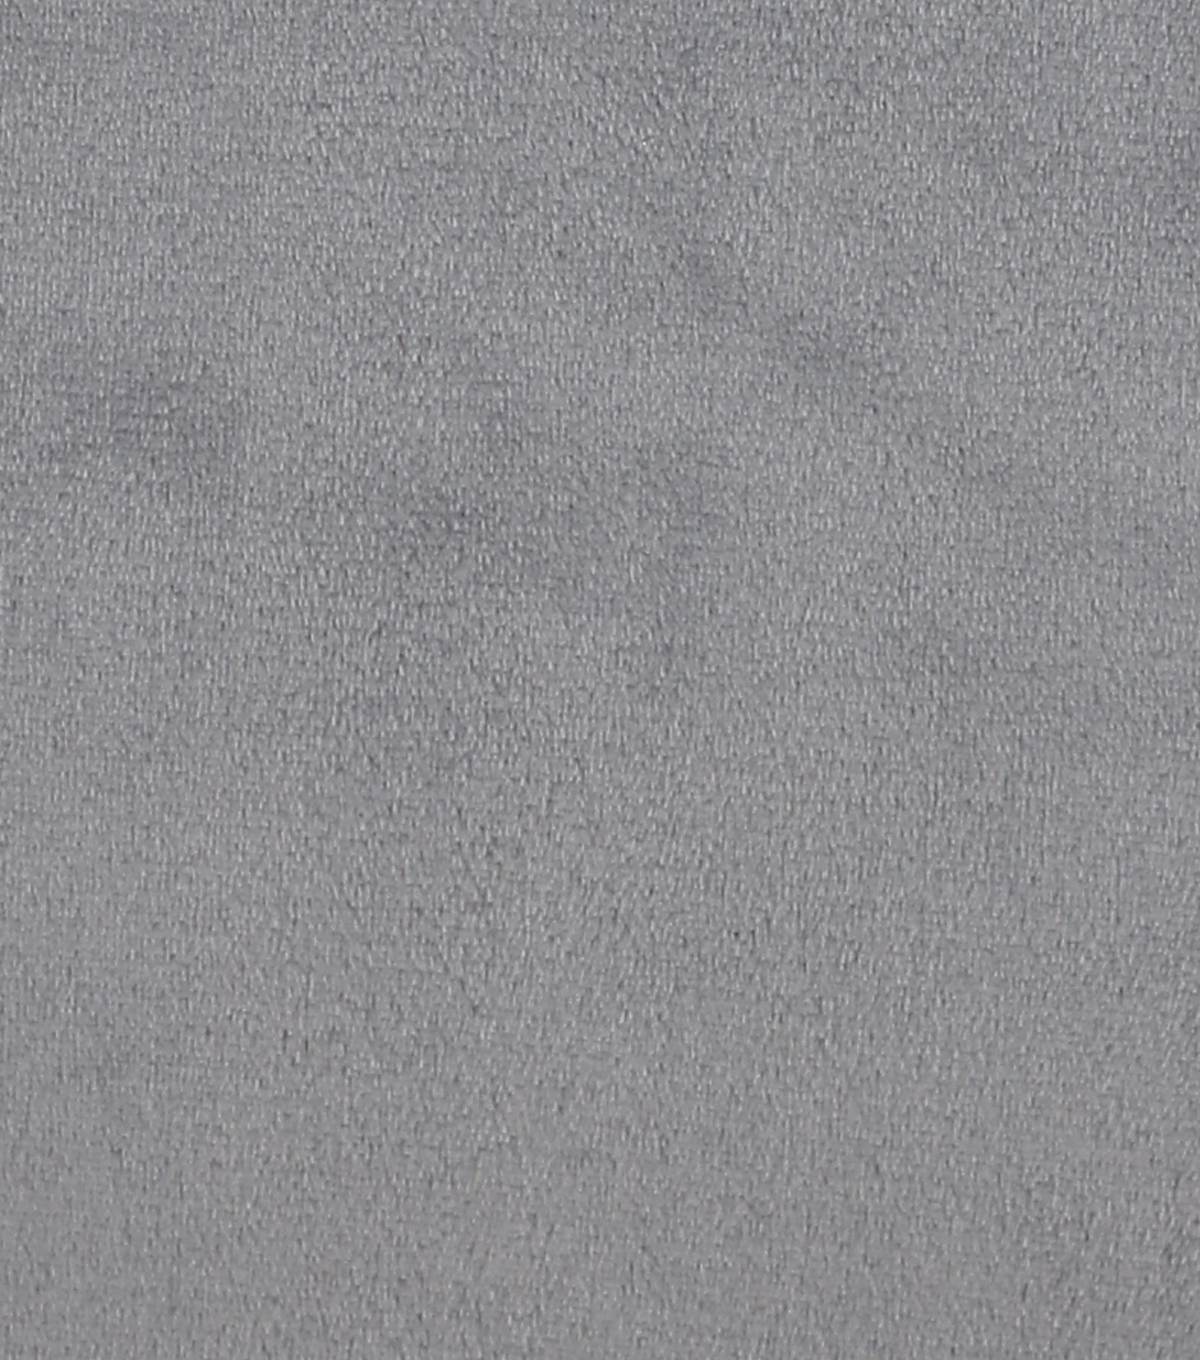 Sew Lush Fleece Fabric -Frost Gray Solids